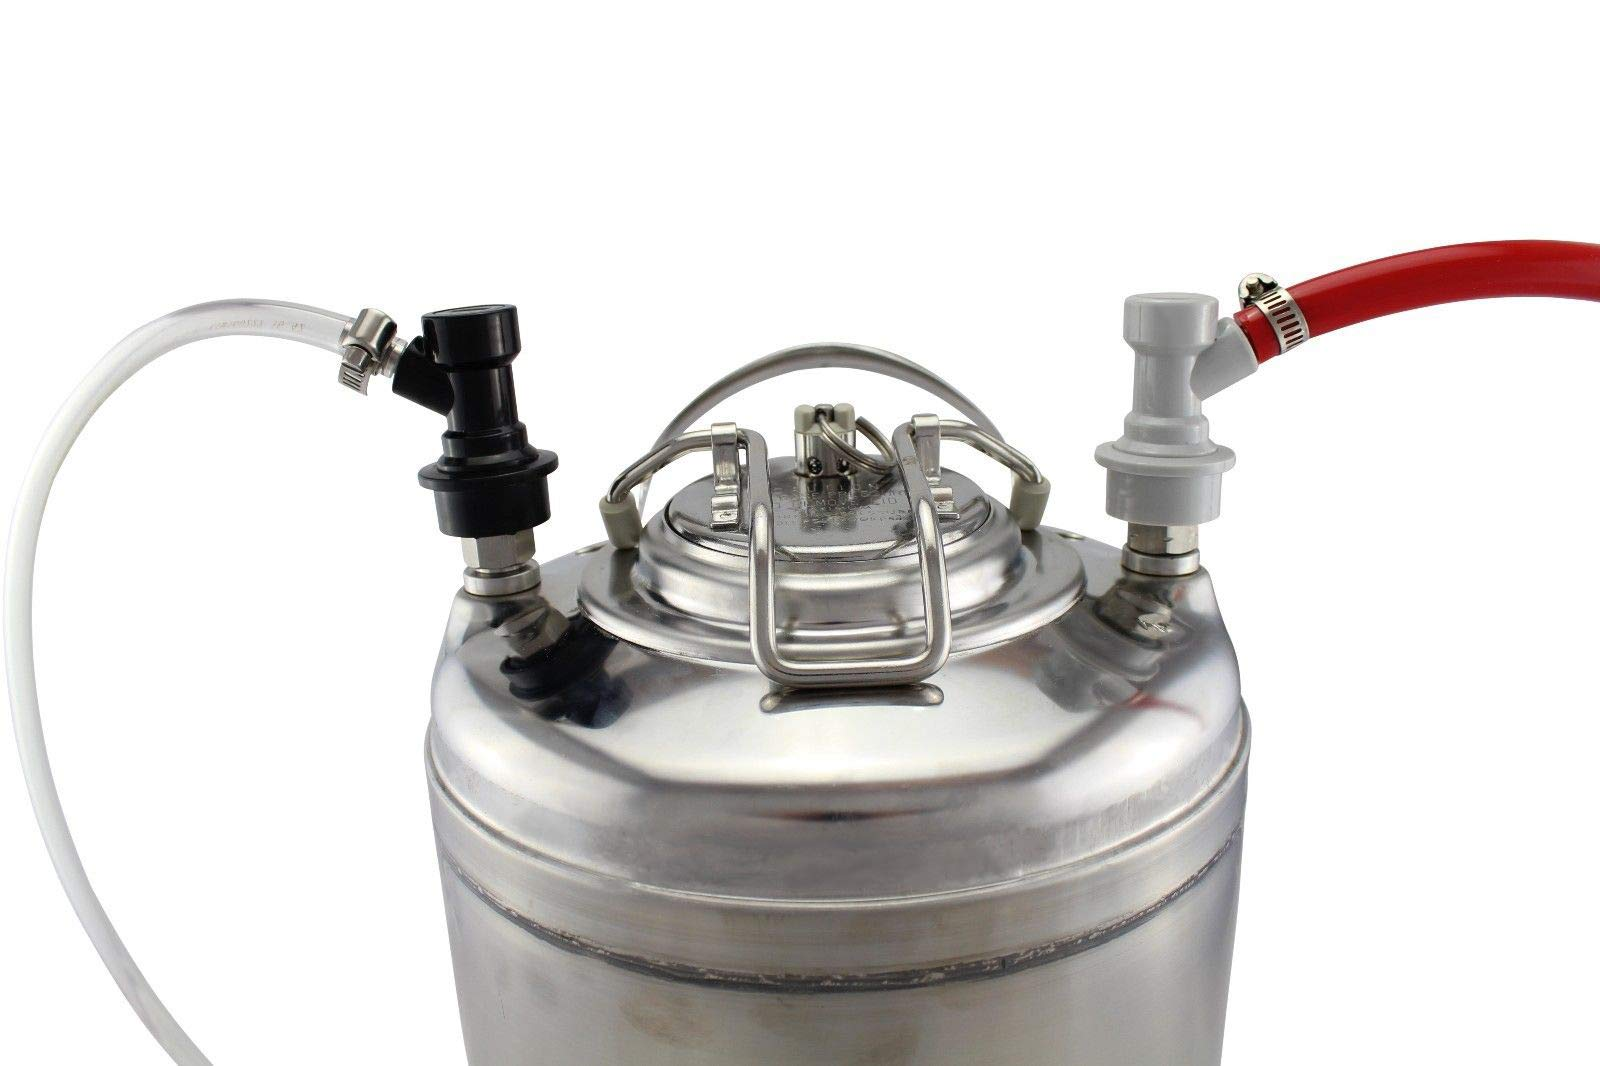 PERA 2 Pair Ball Lock MFL Beer Keg Disconnect Set with Swivel Nuts (2) 5/16 Gas, 1/4 Liquid Barbed by PERA